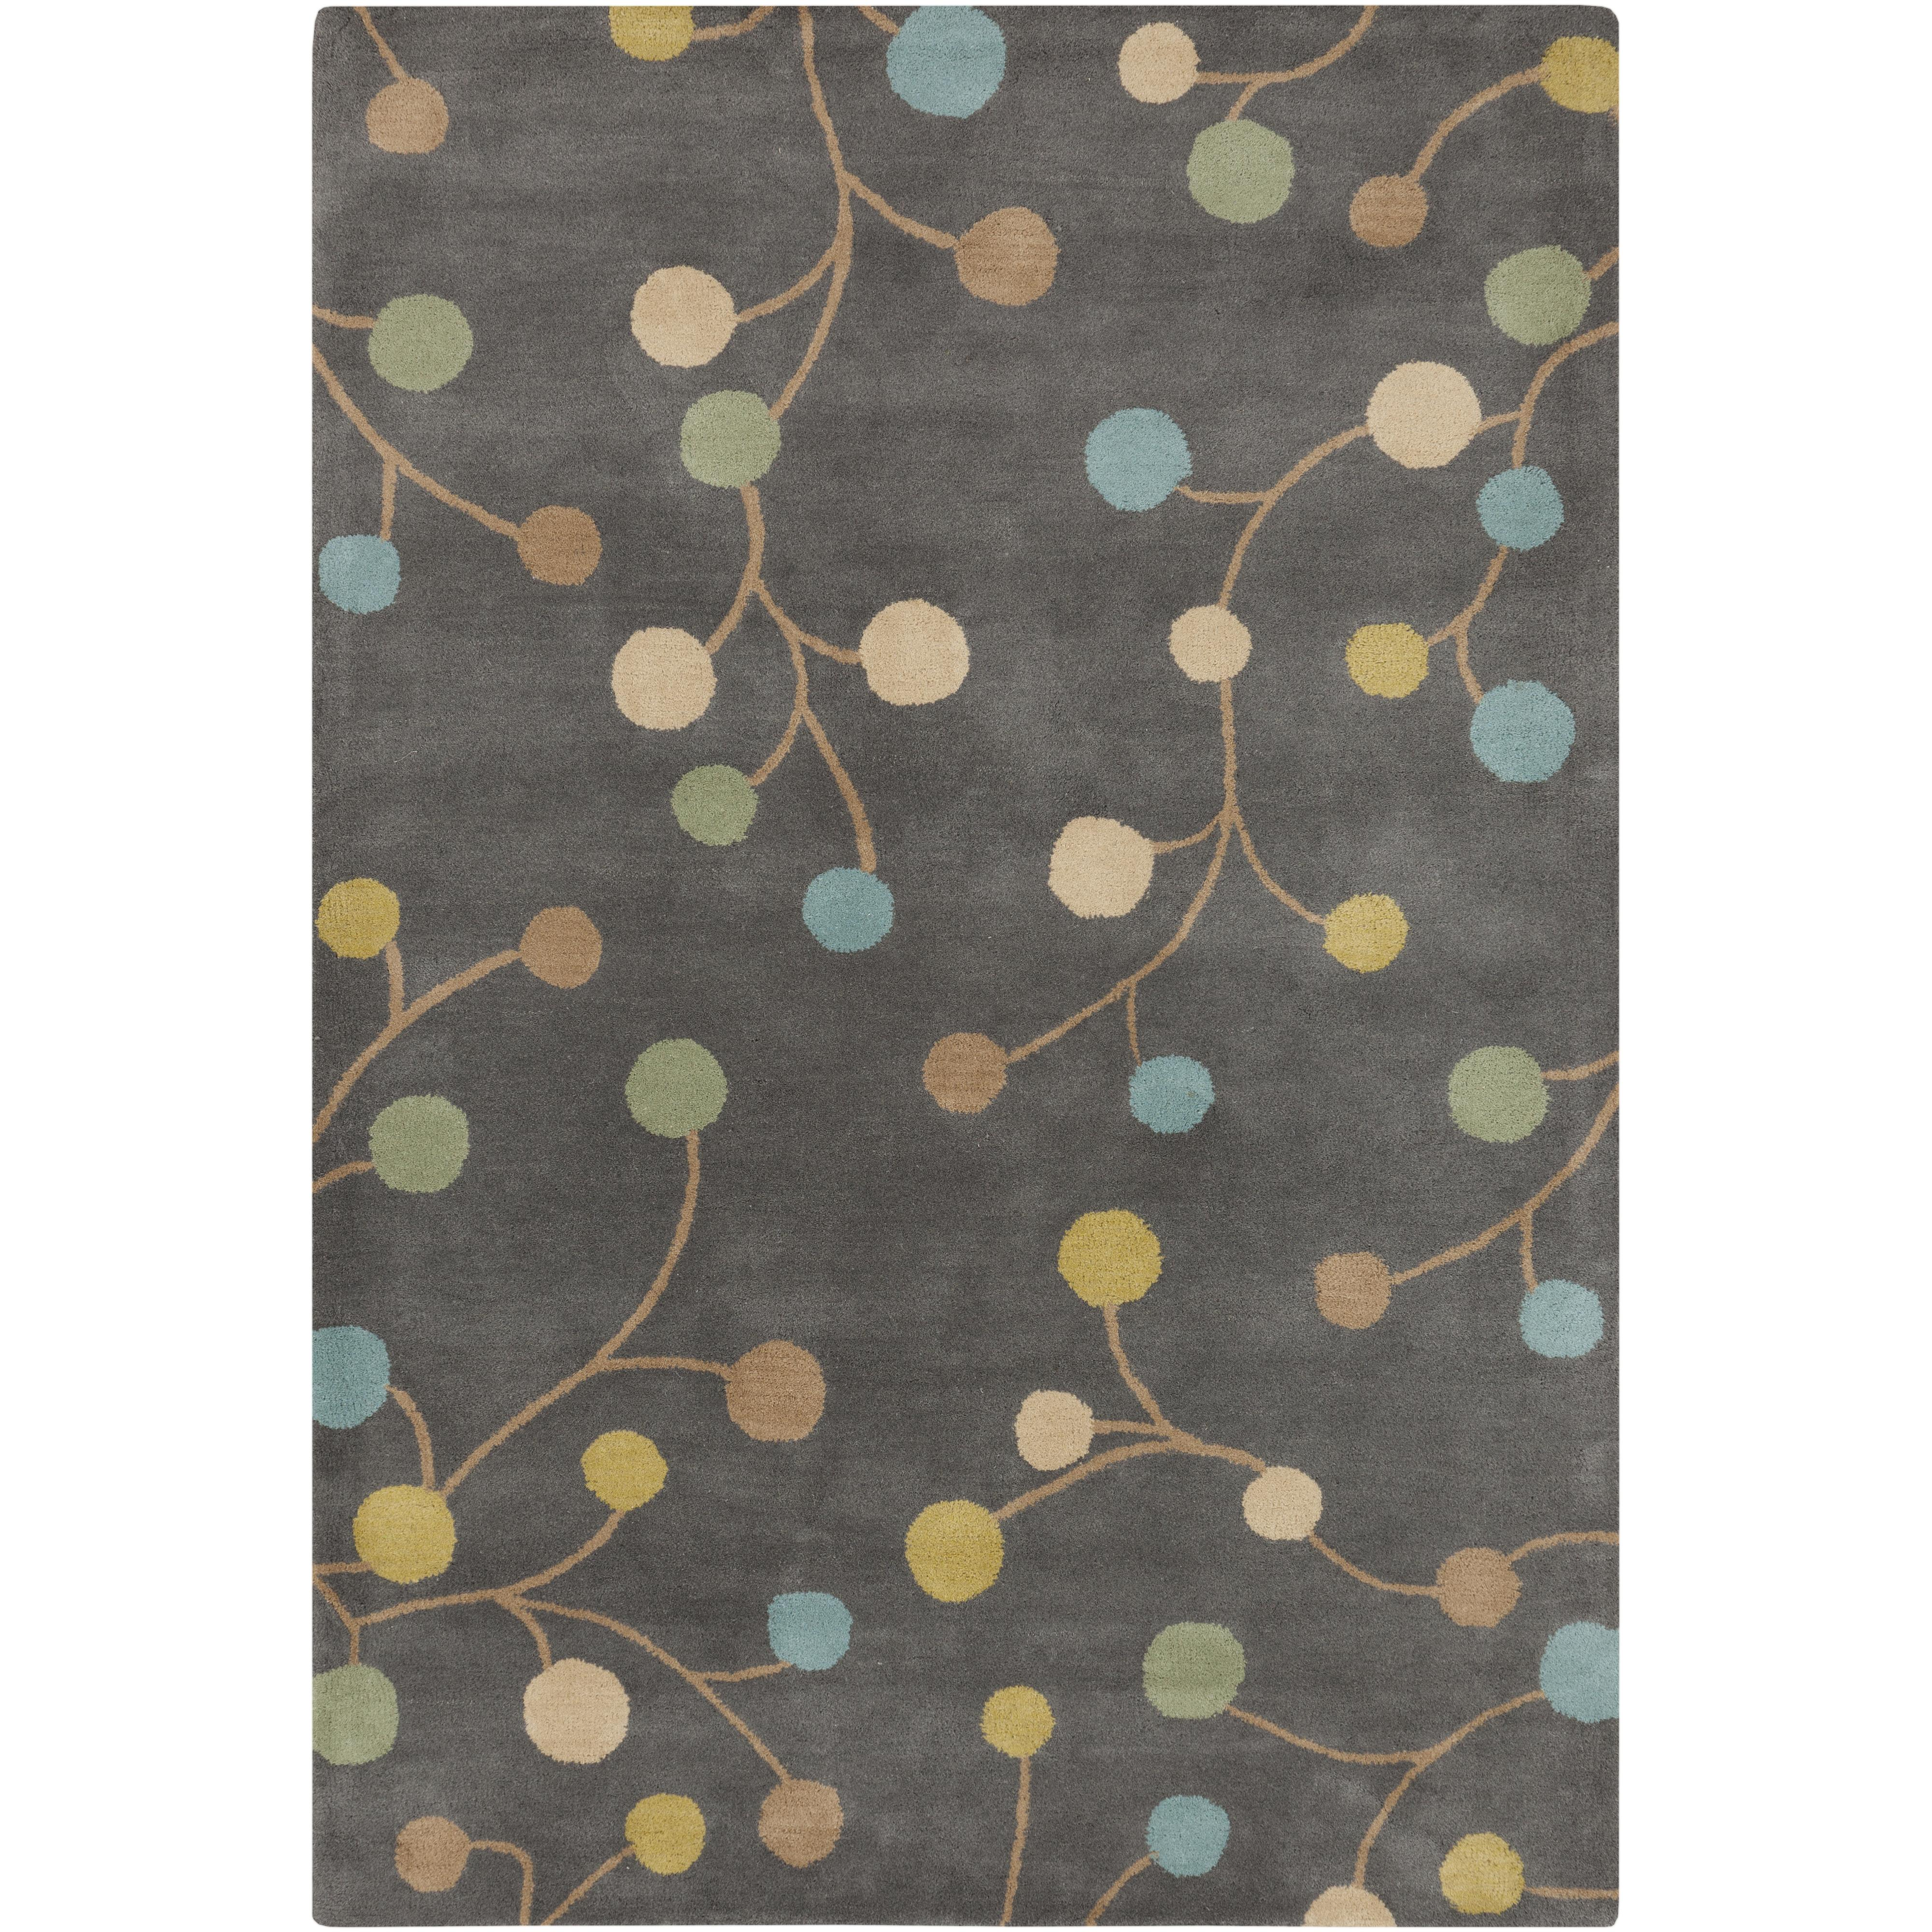 Athena 2' x 3' by Surya at SuperStore